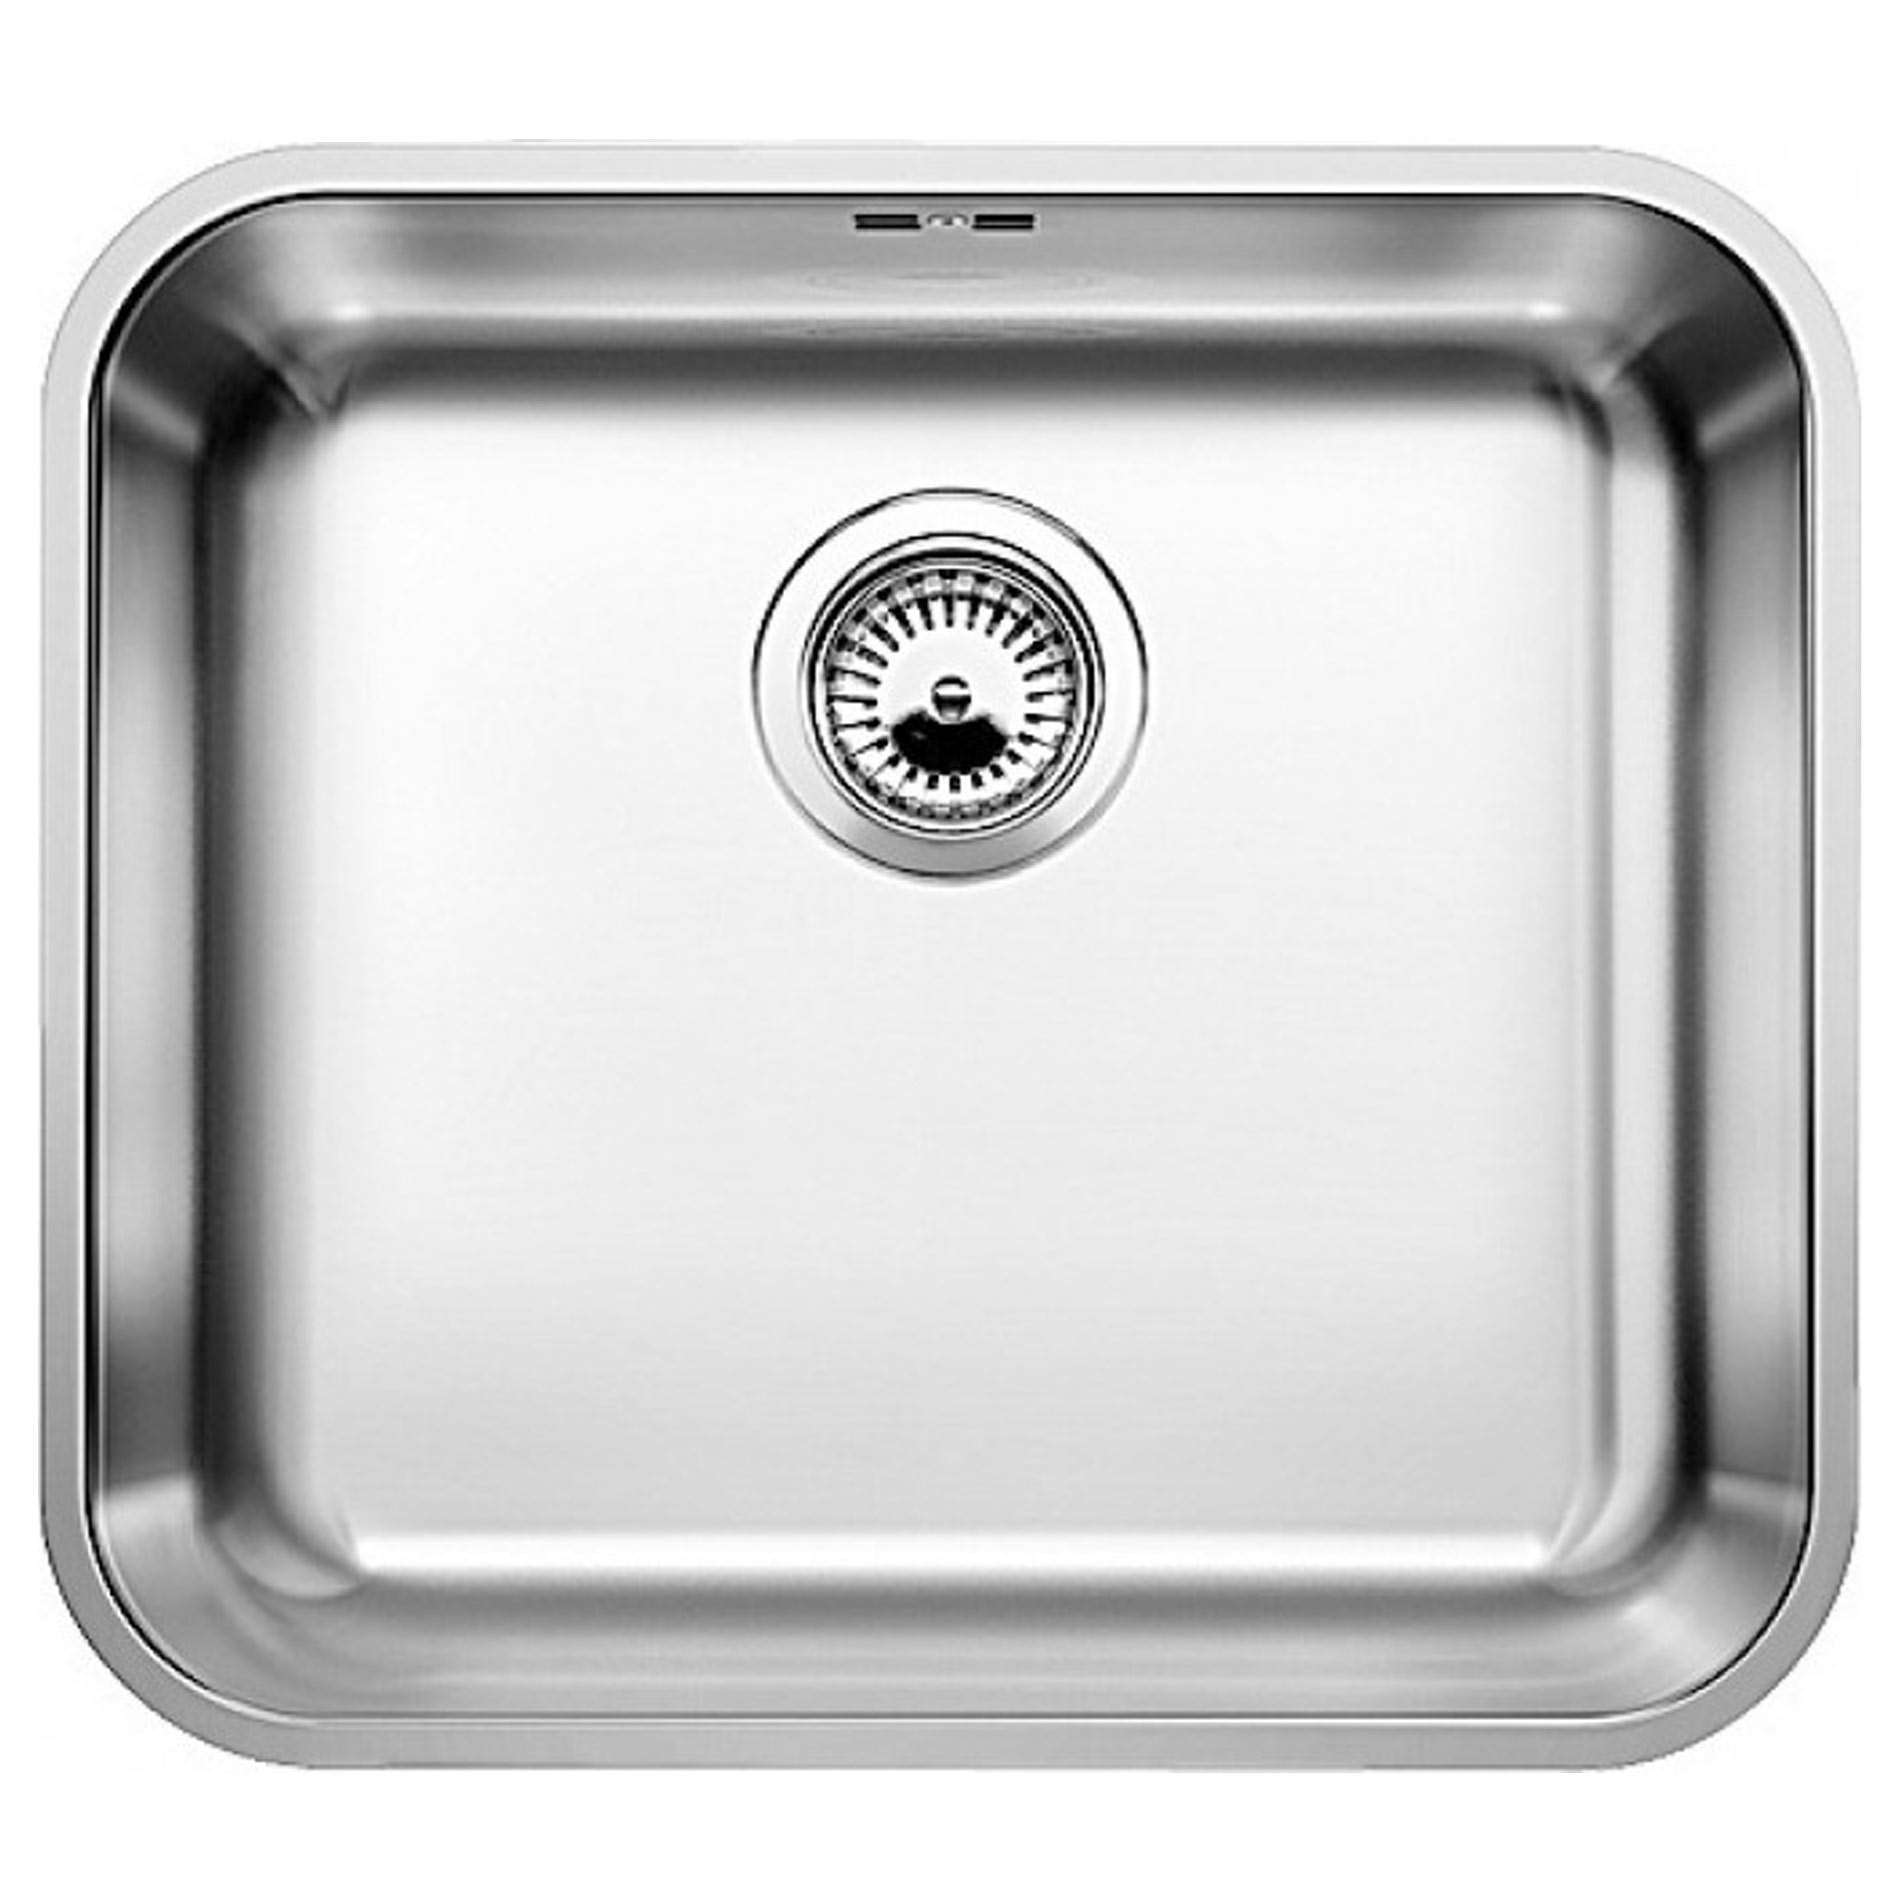 Blanco Kitchen Sinks Uk Blanco supra 450 u stainless steel sink kitchen sinks taps picture of supra 450 u stainless steel sink workwithnaturefo